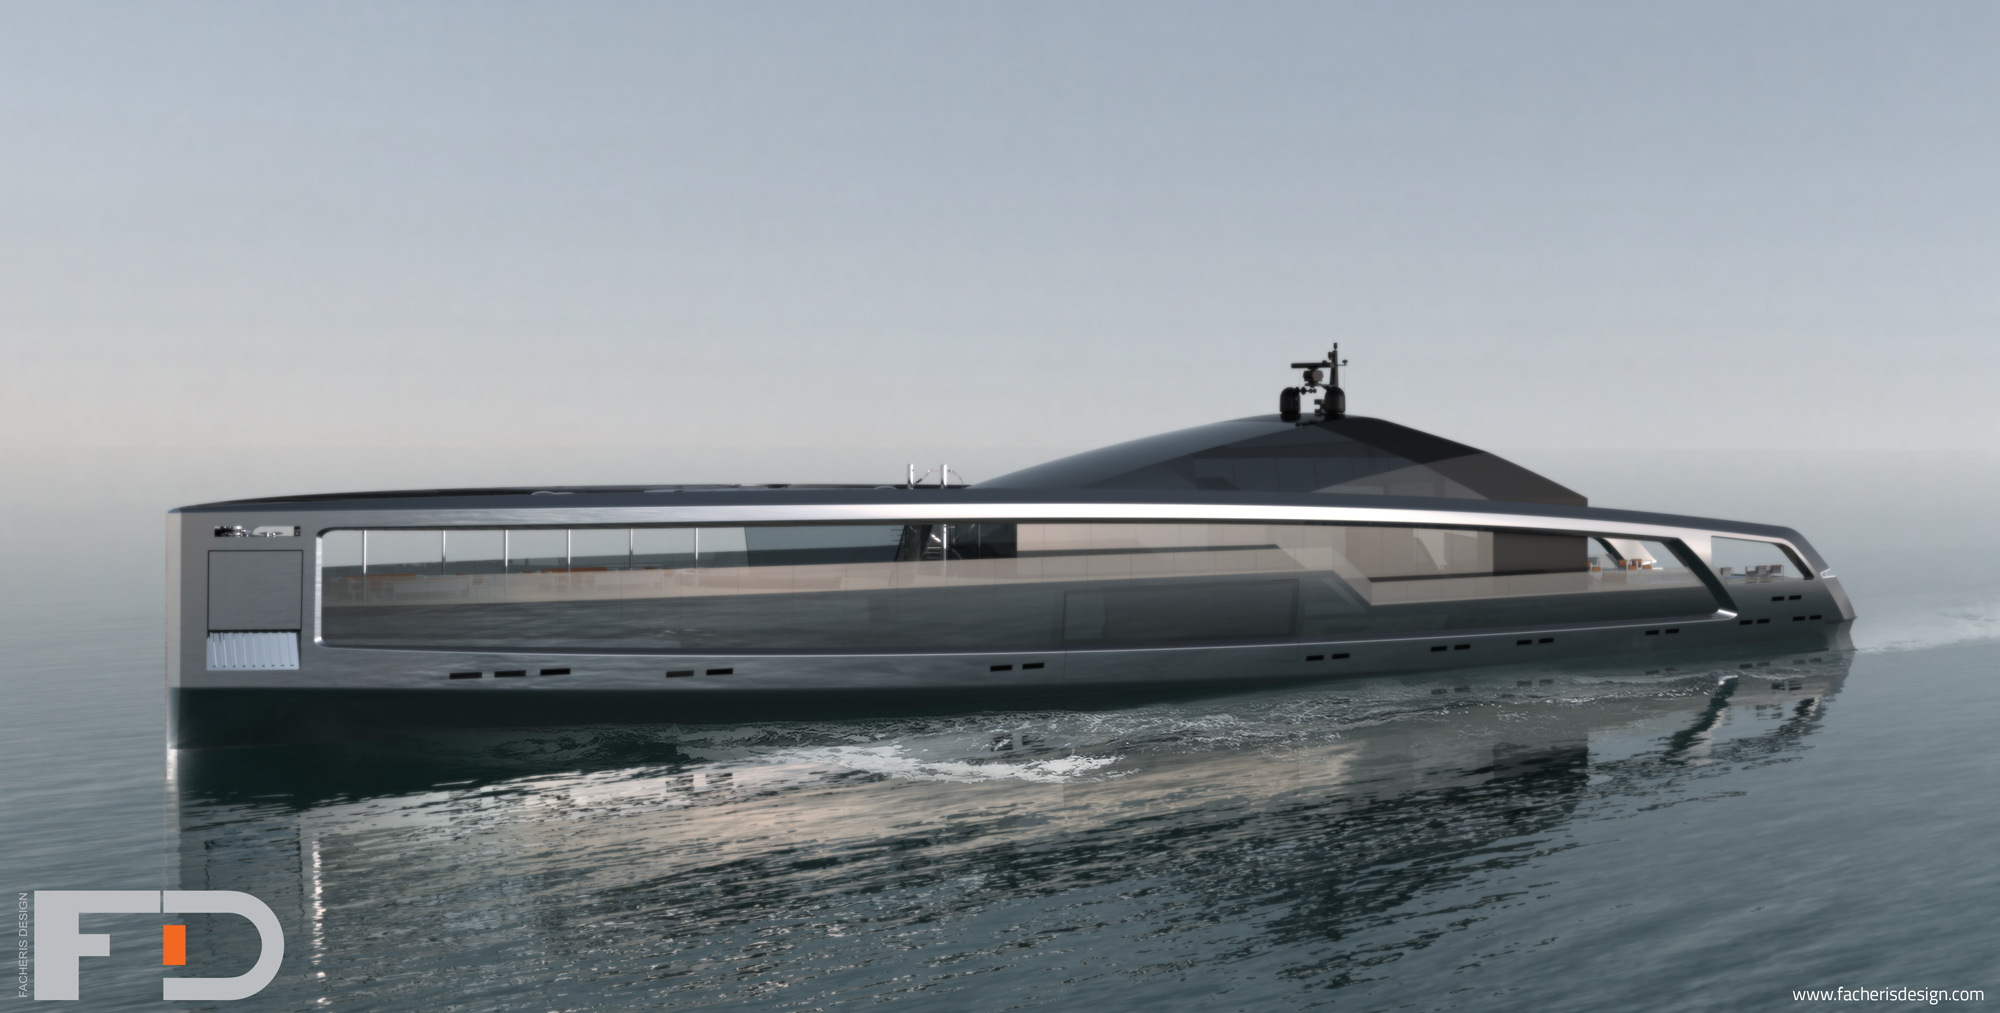 100m Mega Yacht Maximus Concept By Facheris Design